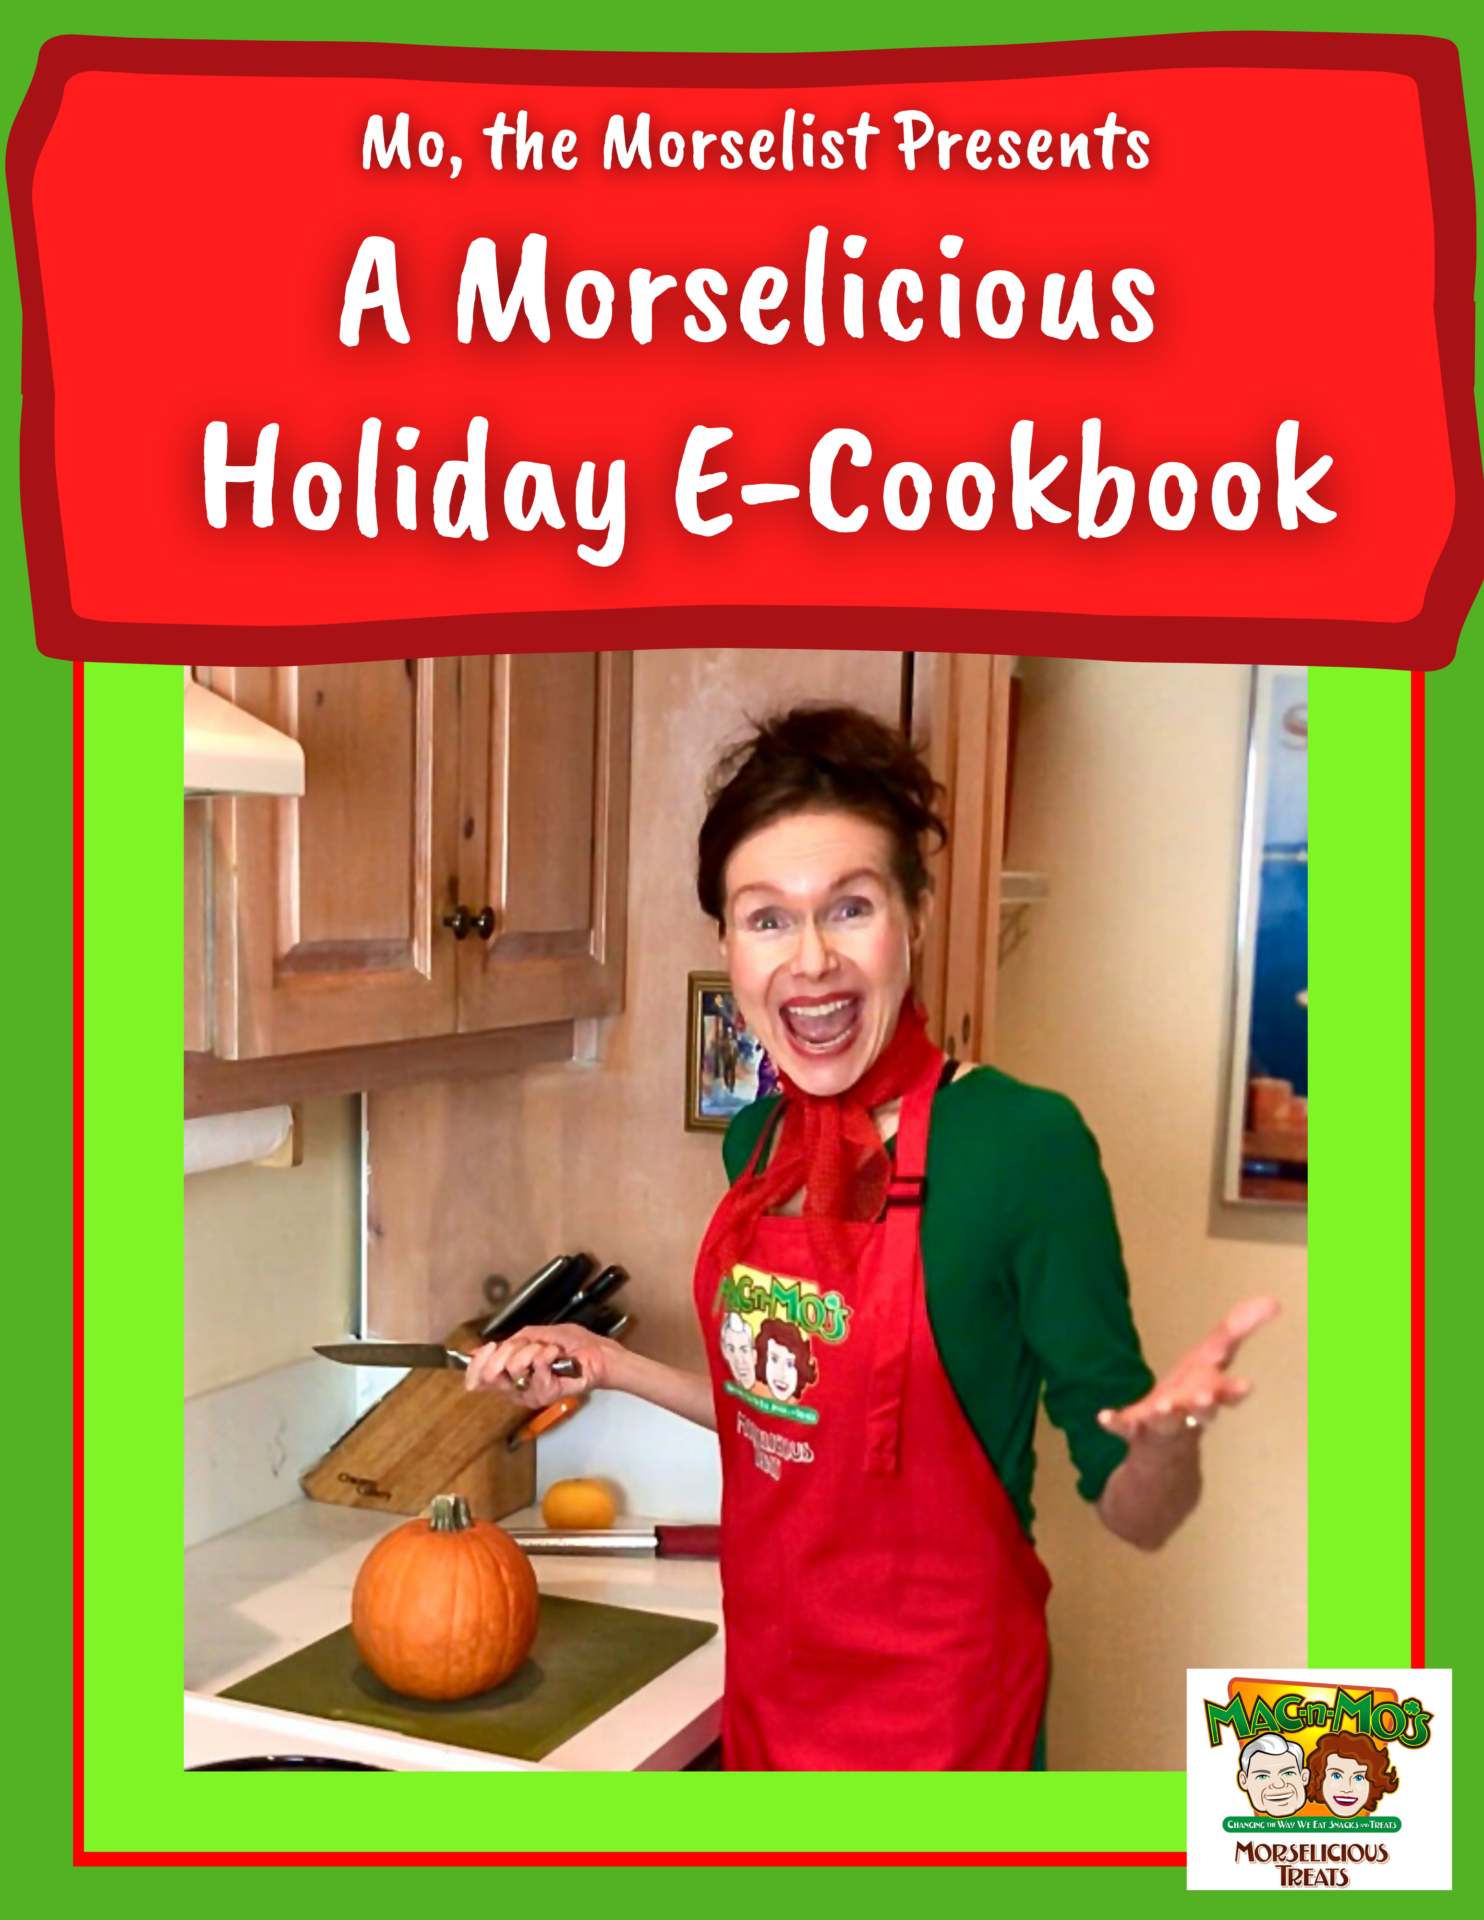 Mo the Morselist Presents A Morselicious Holiday E-Cookbook. Photo of Mo in the kitchen slicing a pumpkin.